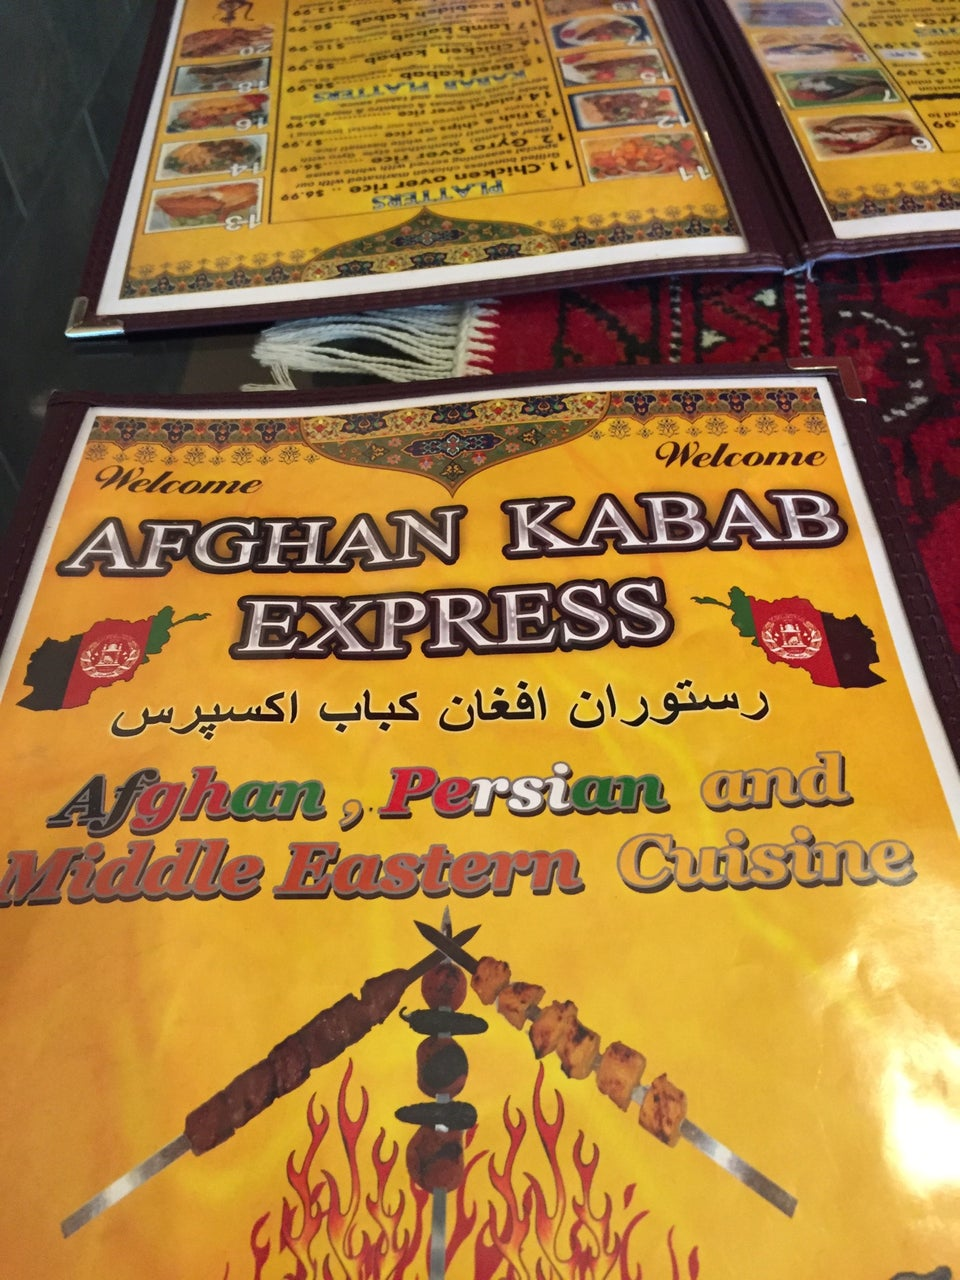 Afghan Kabab Express 305 Central Ave #2, Albany